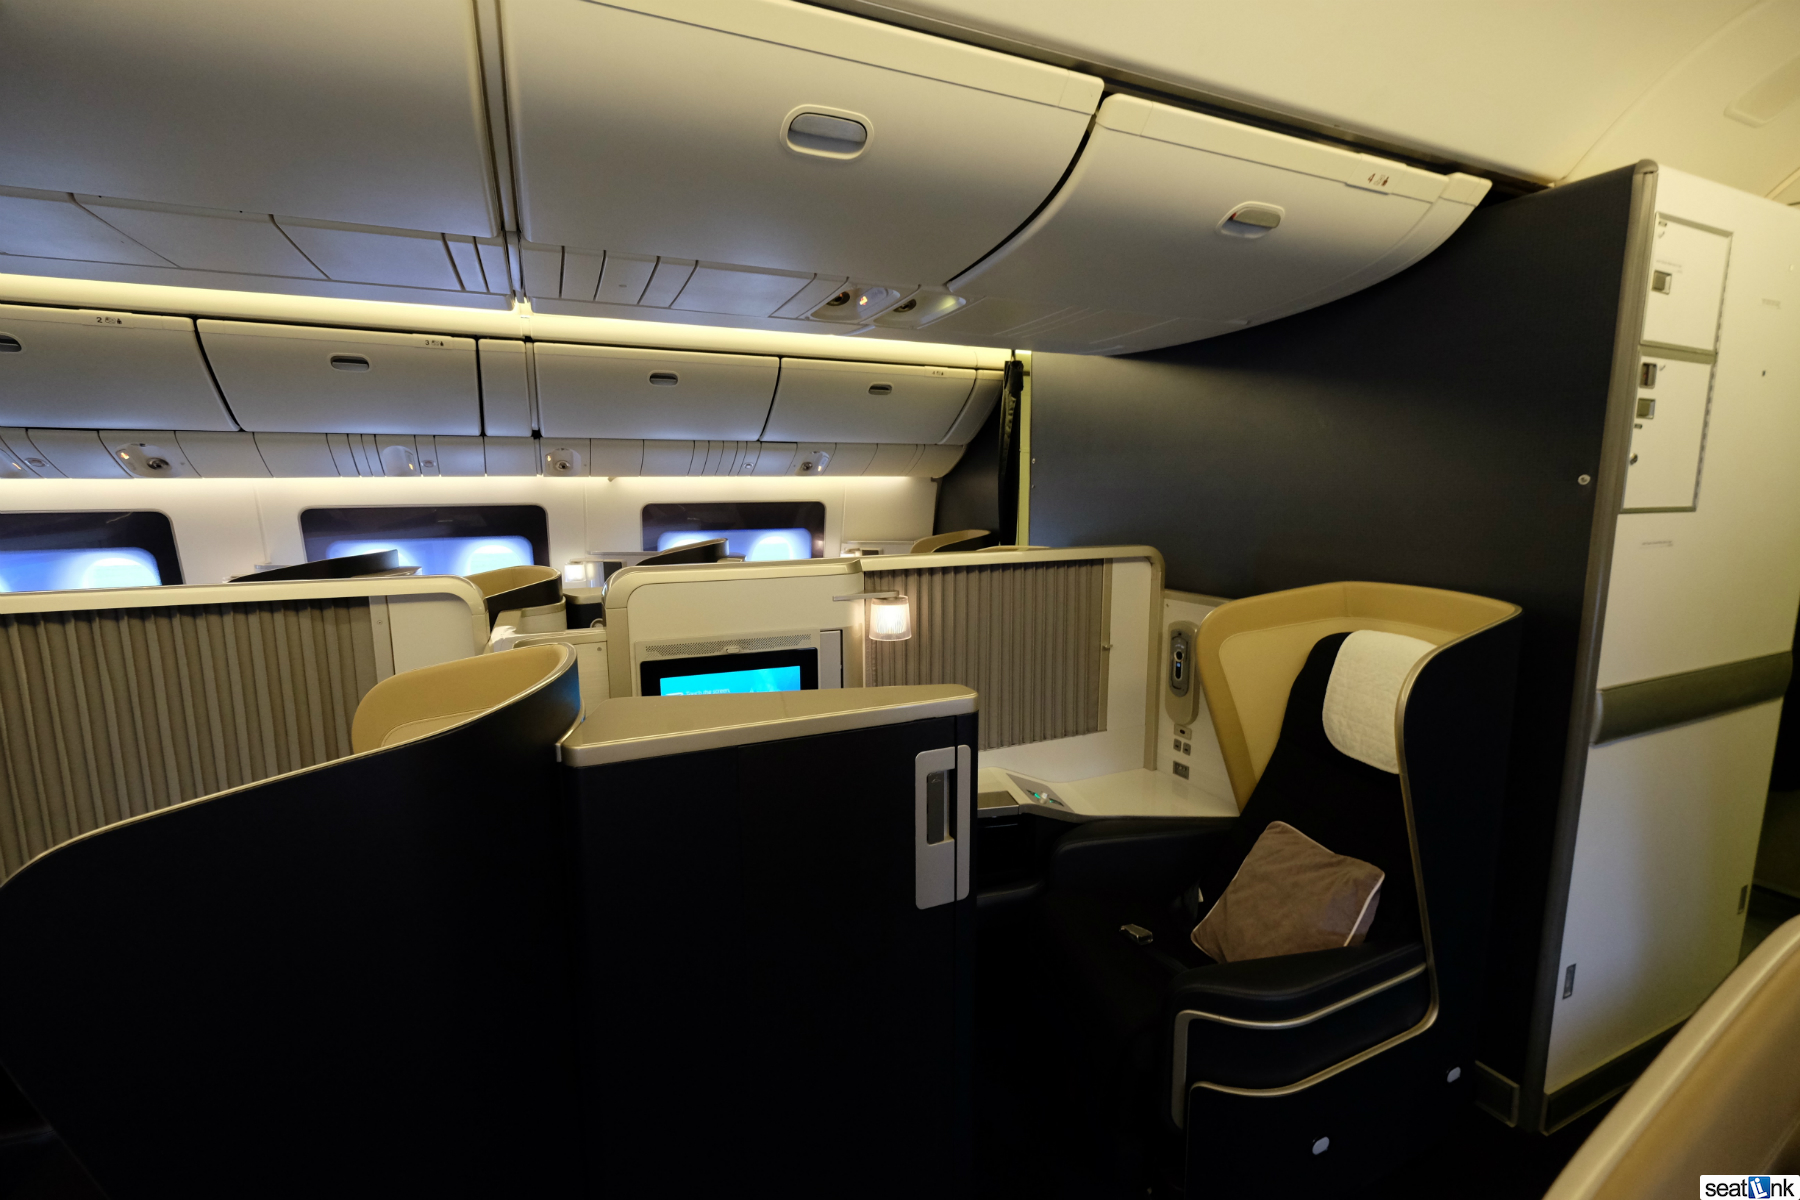 British Airways 777 First Class LHR to SEA [Review] - The ...British Airways First Class 777